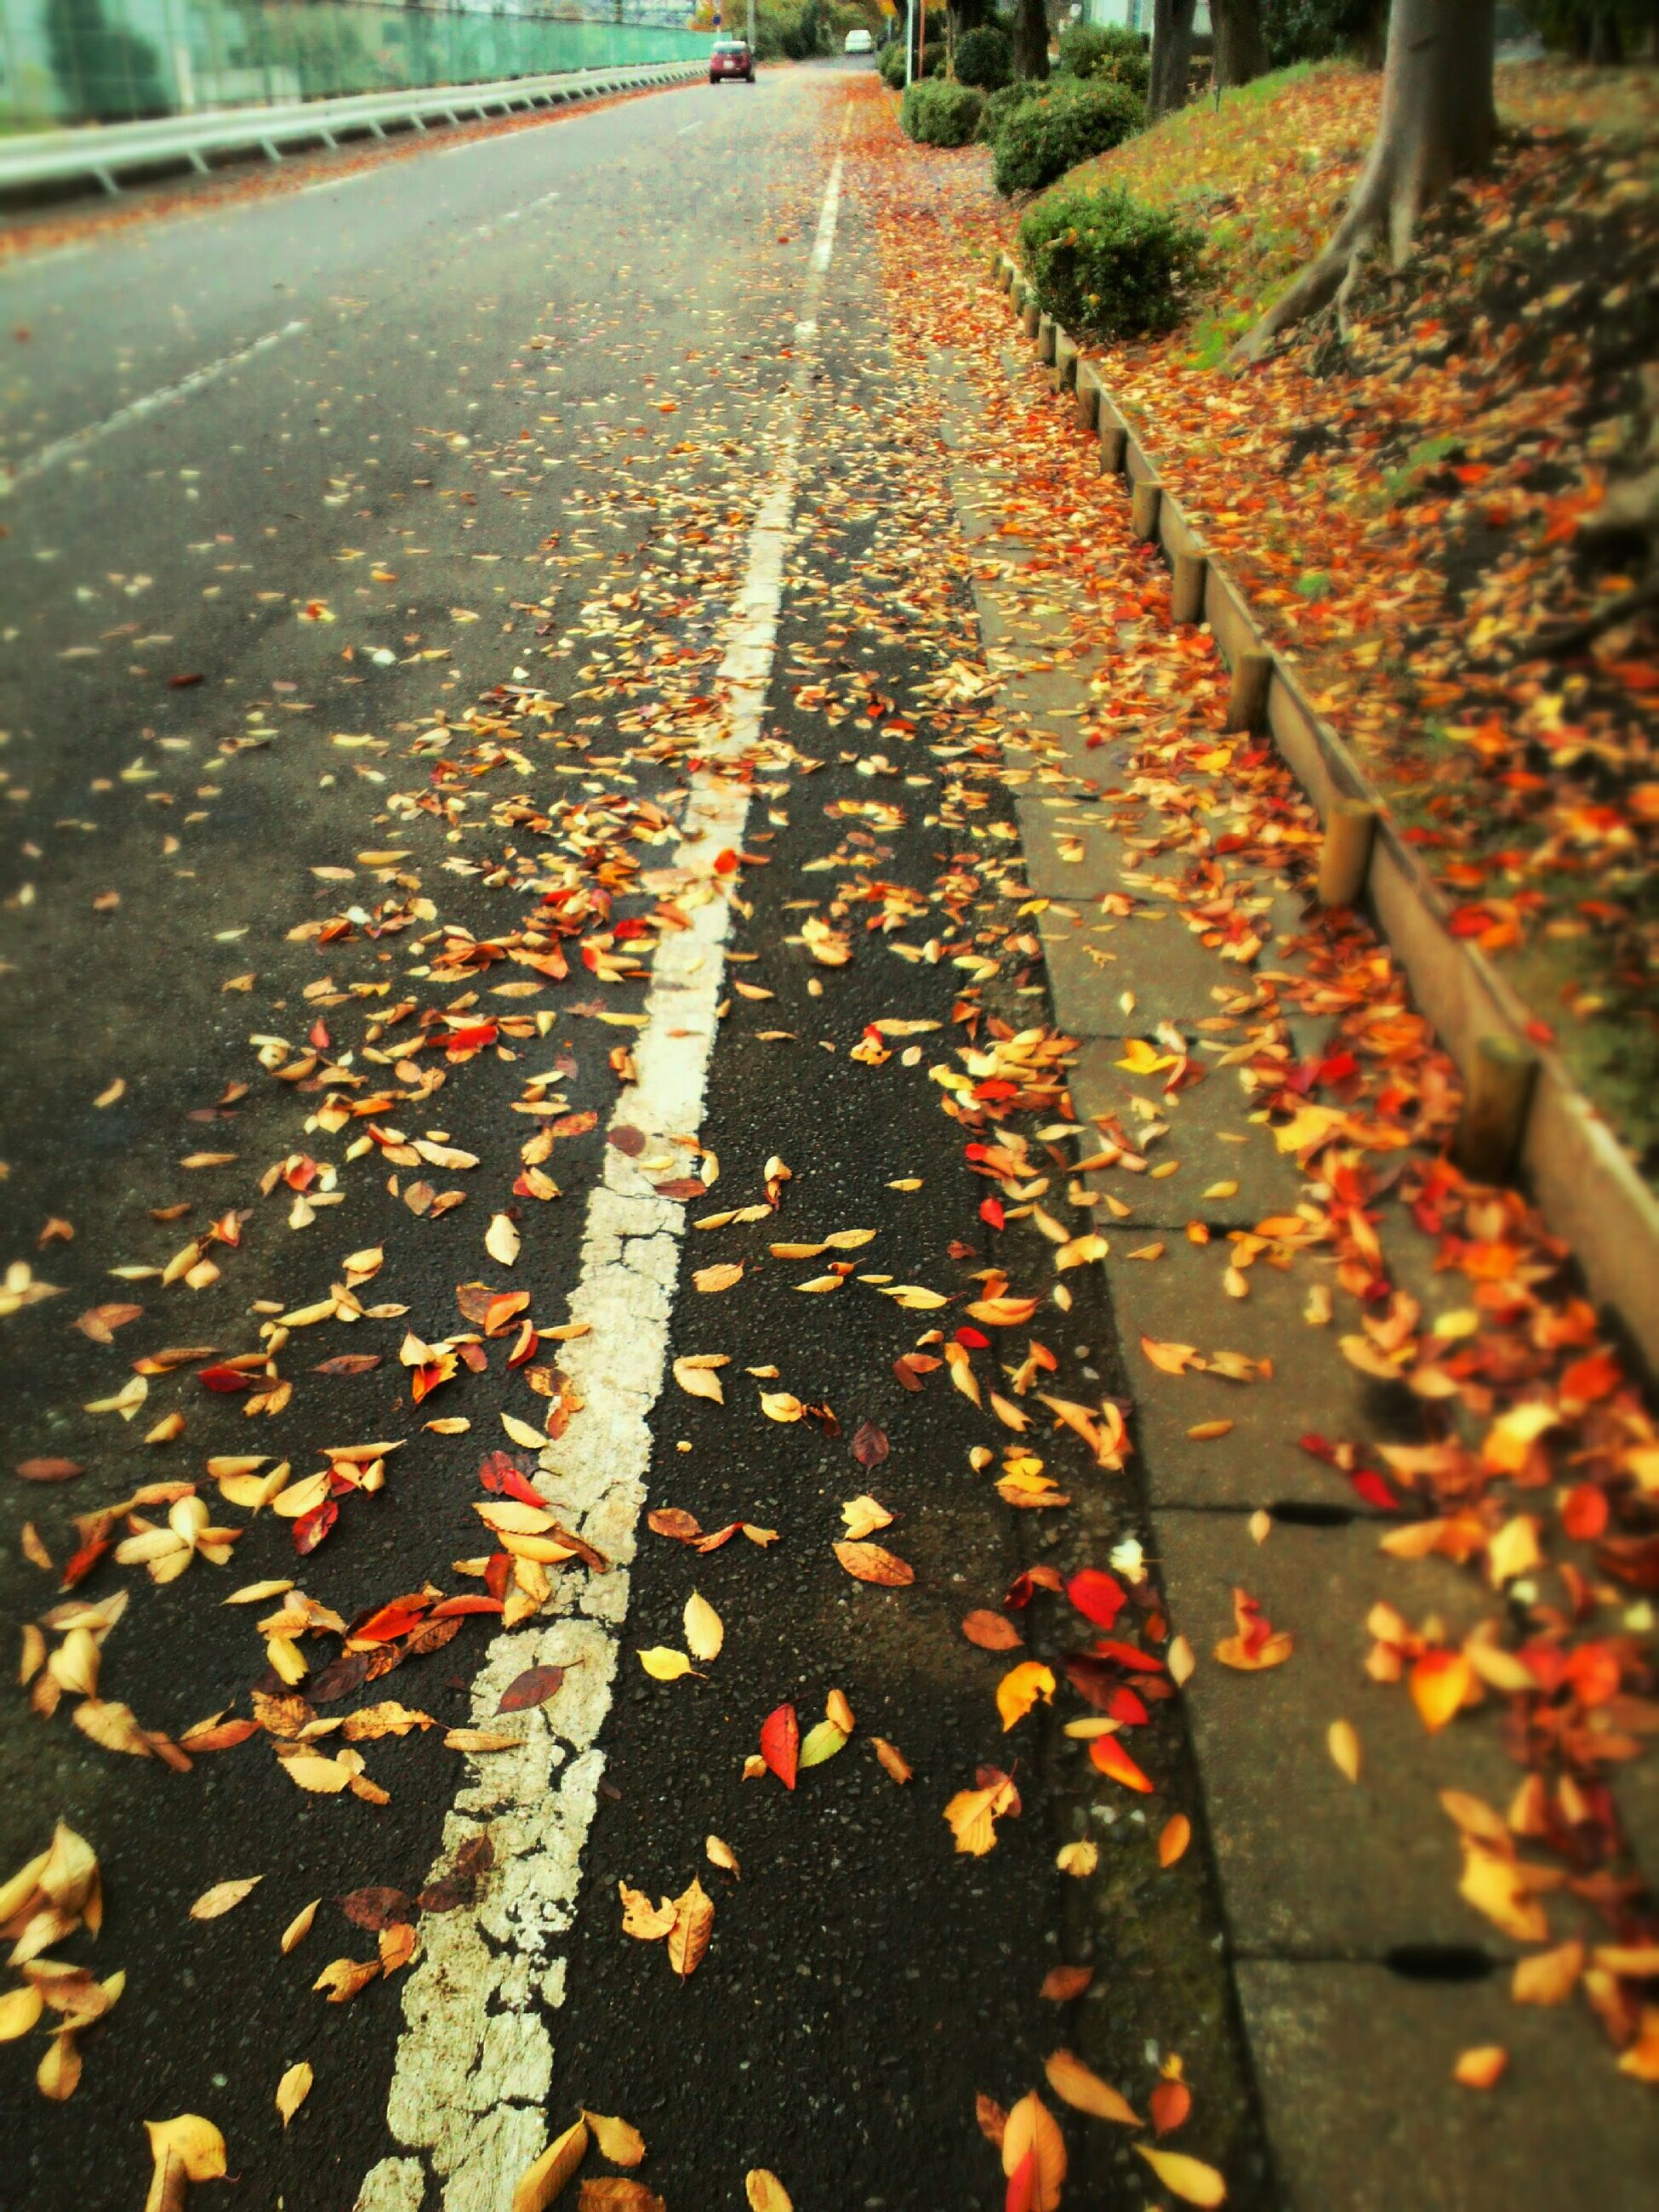 the way forward, transportation, diminishing perspective, autumn, season, vanishing point, leaf, change, asphalt, high angle view, railroad track, road, leaves, street, fallen, surface level, wet, road marking, dry, nature